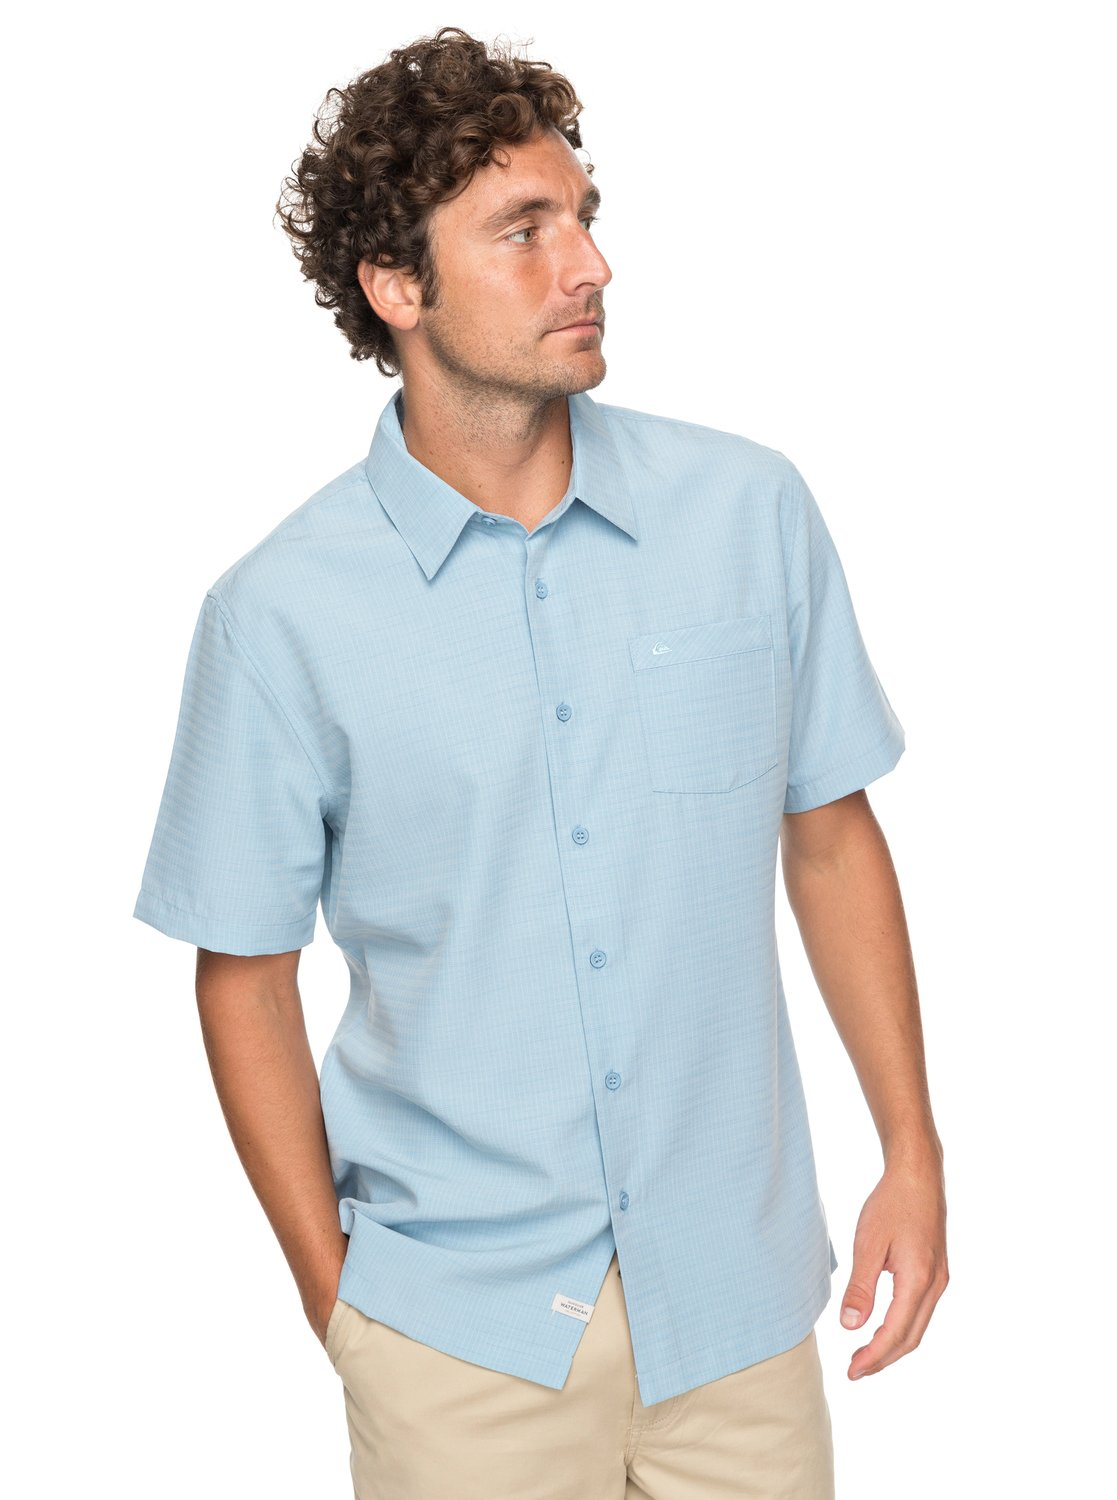 2f5e417c006 0 Waterman Centinela 4 - Short Sleeve Shirt for Men Blue EQMWT03148  Quiksilver